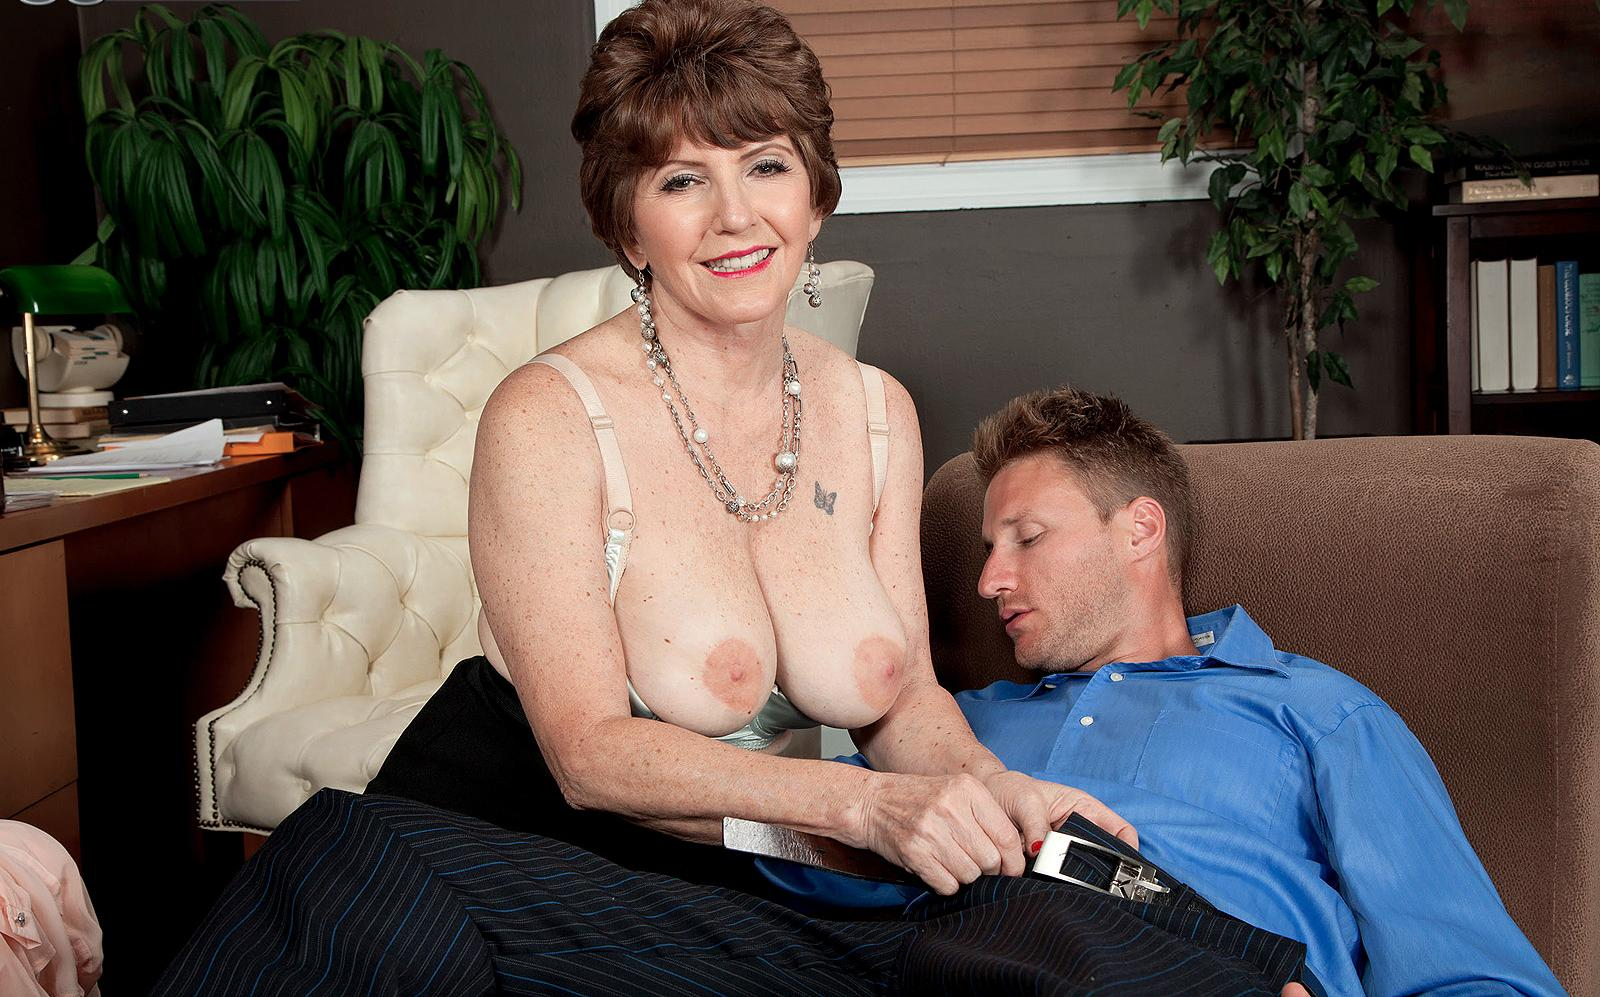 Andrea a lustfull granny offering her old holes for young to dump cum inside